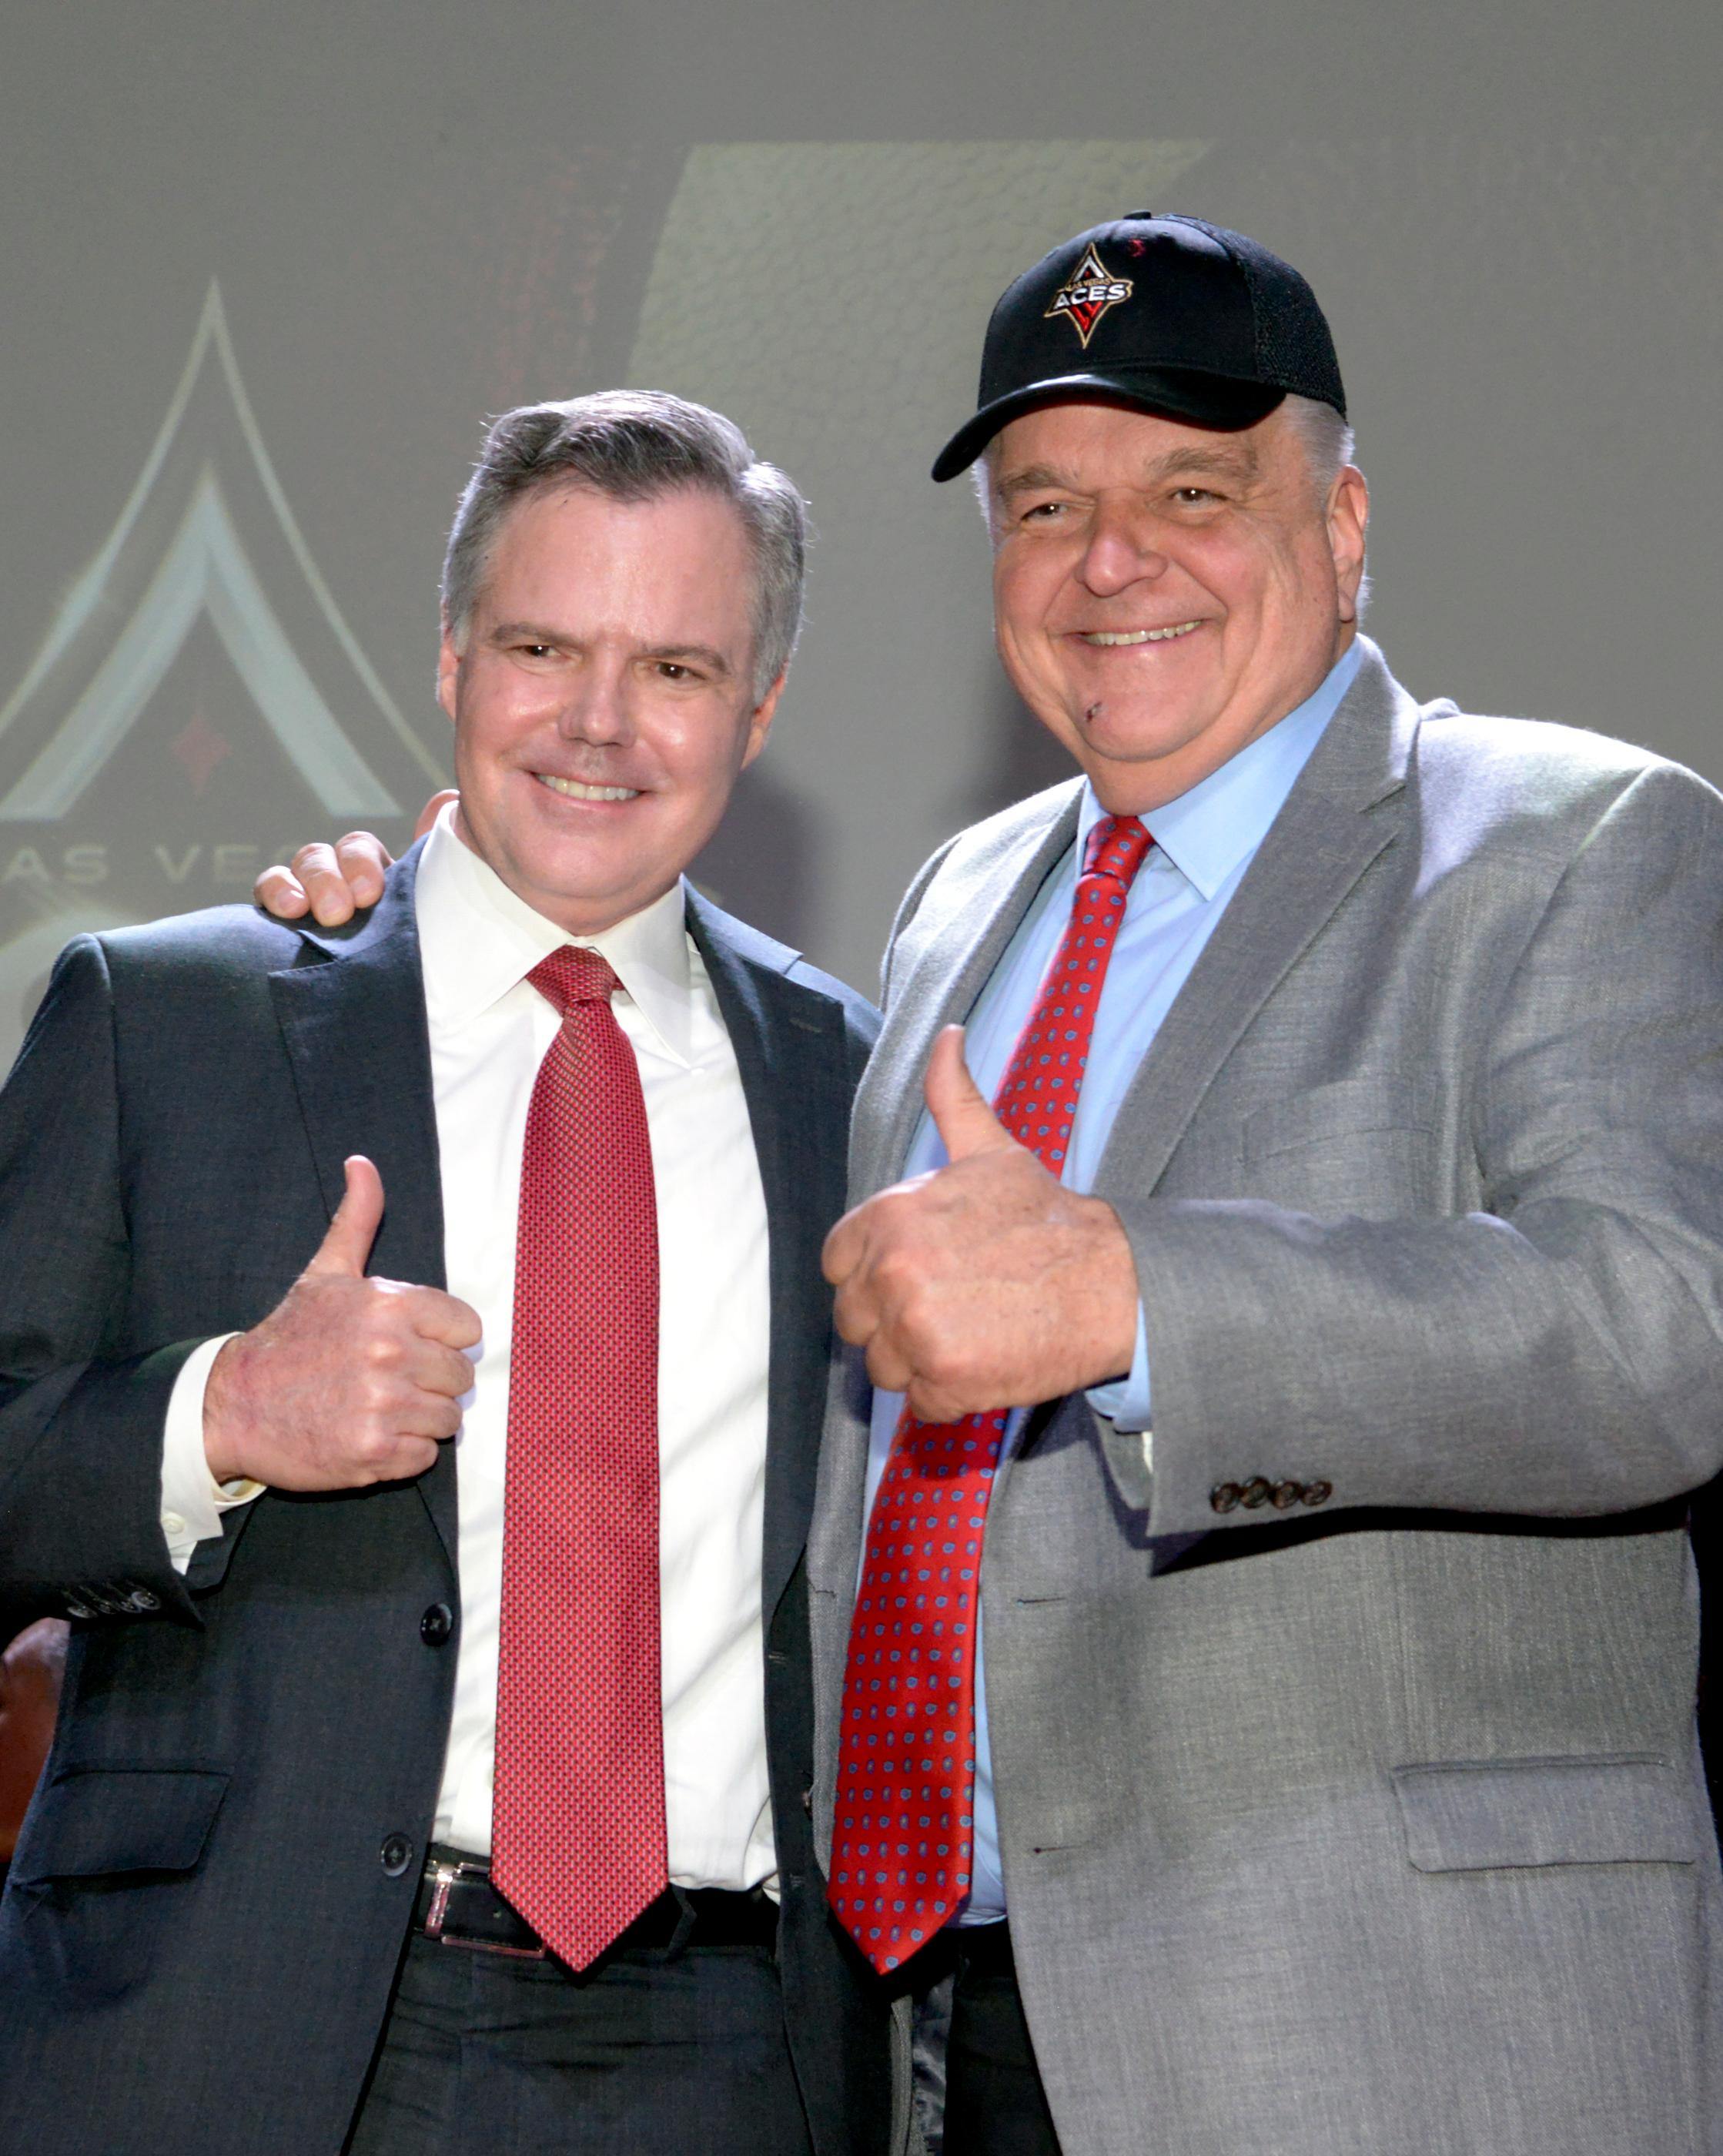 Jim Murren (l) Chairman and CEO of MGM Resorts International and Clark County Commissioner Steve Sisolak, wearing the new WNBA Las Vegas Aces hat pose during the press conference announcing Las Vegas' newest professional sports franchise at Mandalay Bay. Monday, December 11, 2017. CREDIT: Glenn Pinkerton/Las Vegas News Bureau